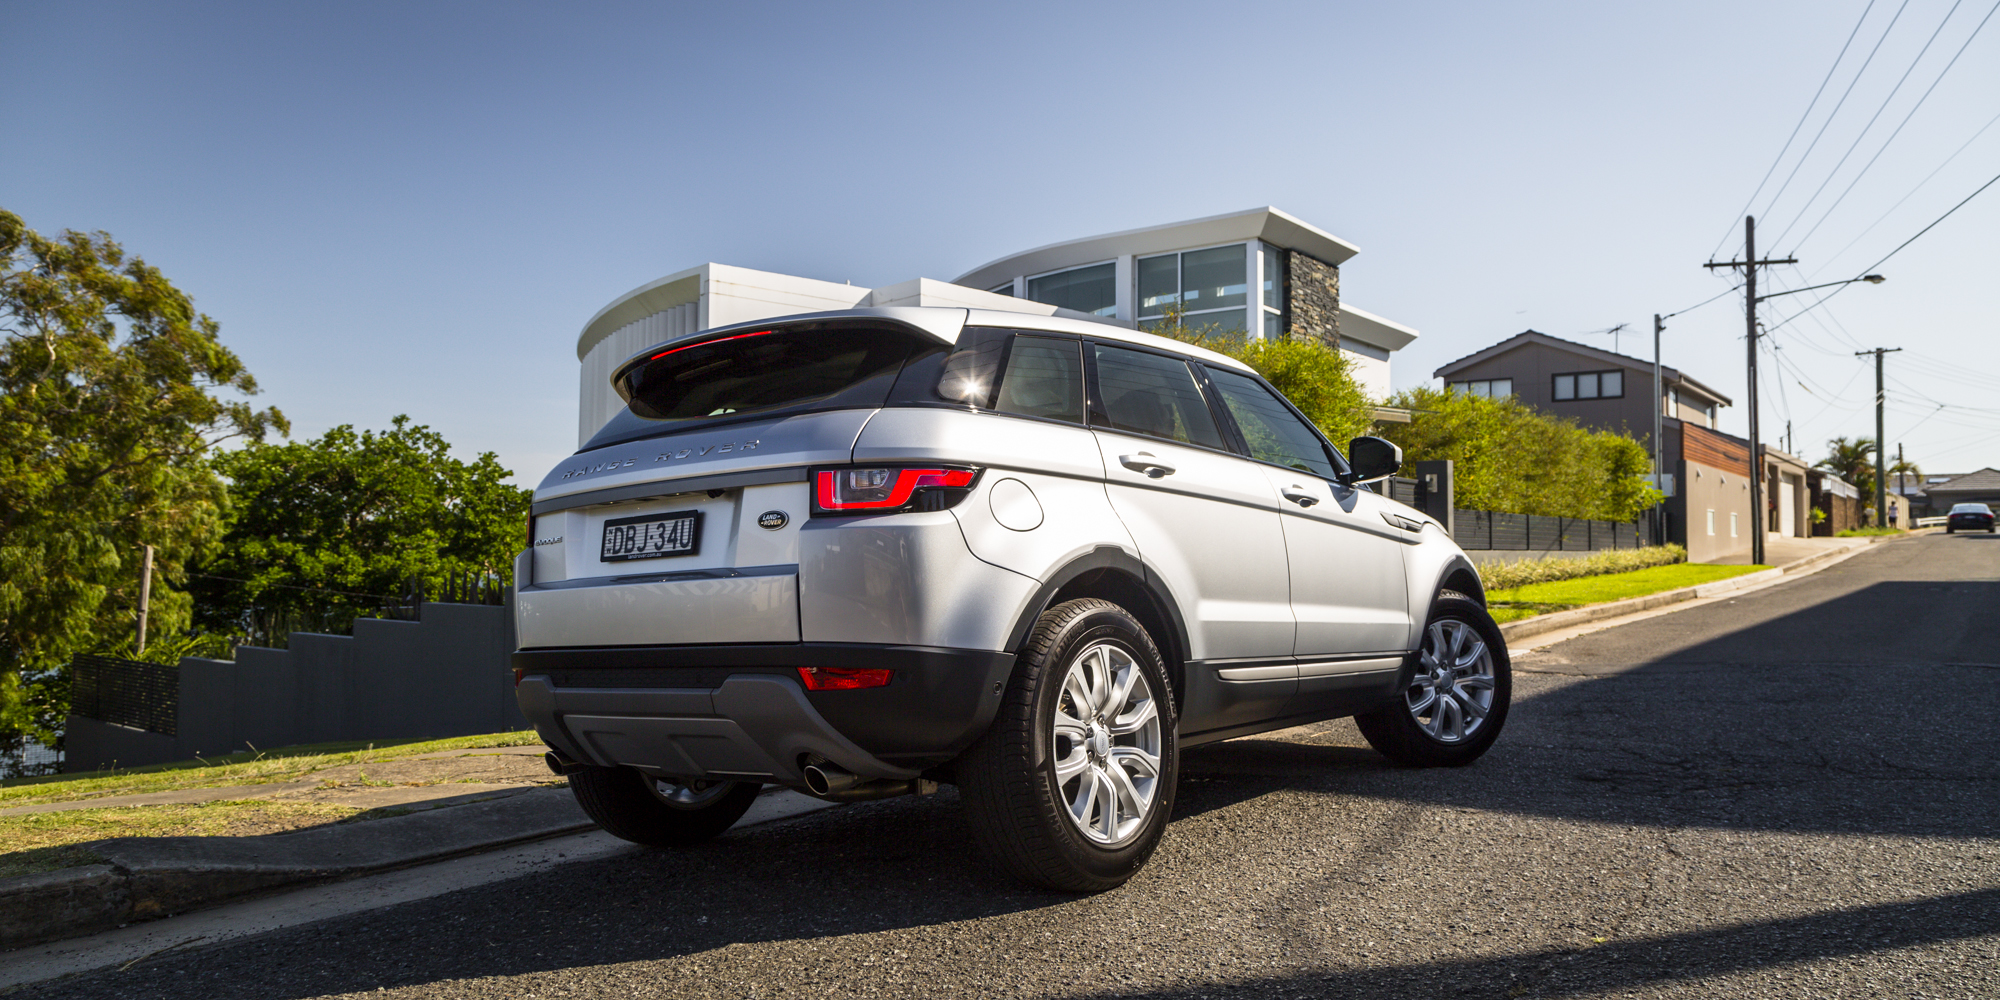 Cool 2016 Range Rover Evoque Review  CarAdvice